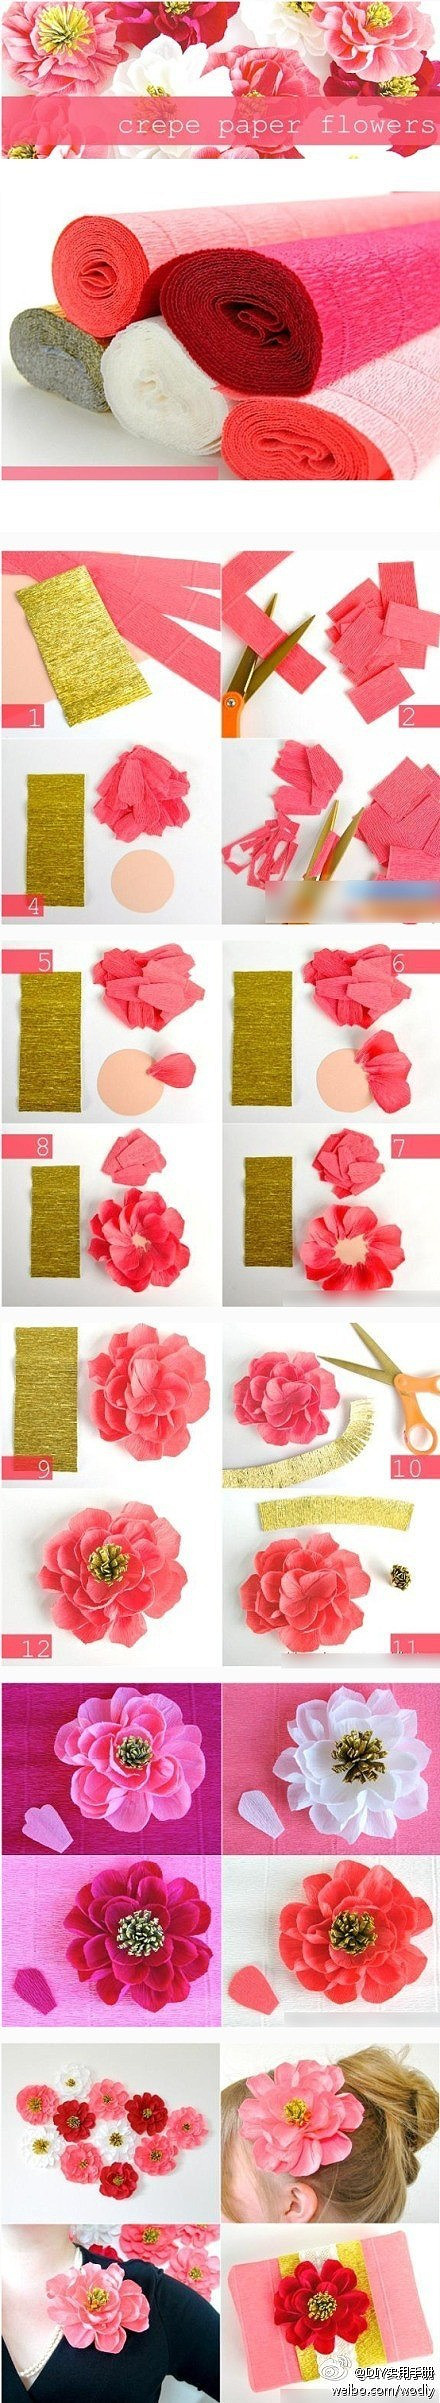 Inspirational Monday Do It Yourself Diy Flower Series Crepe